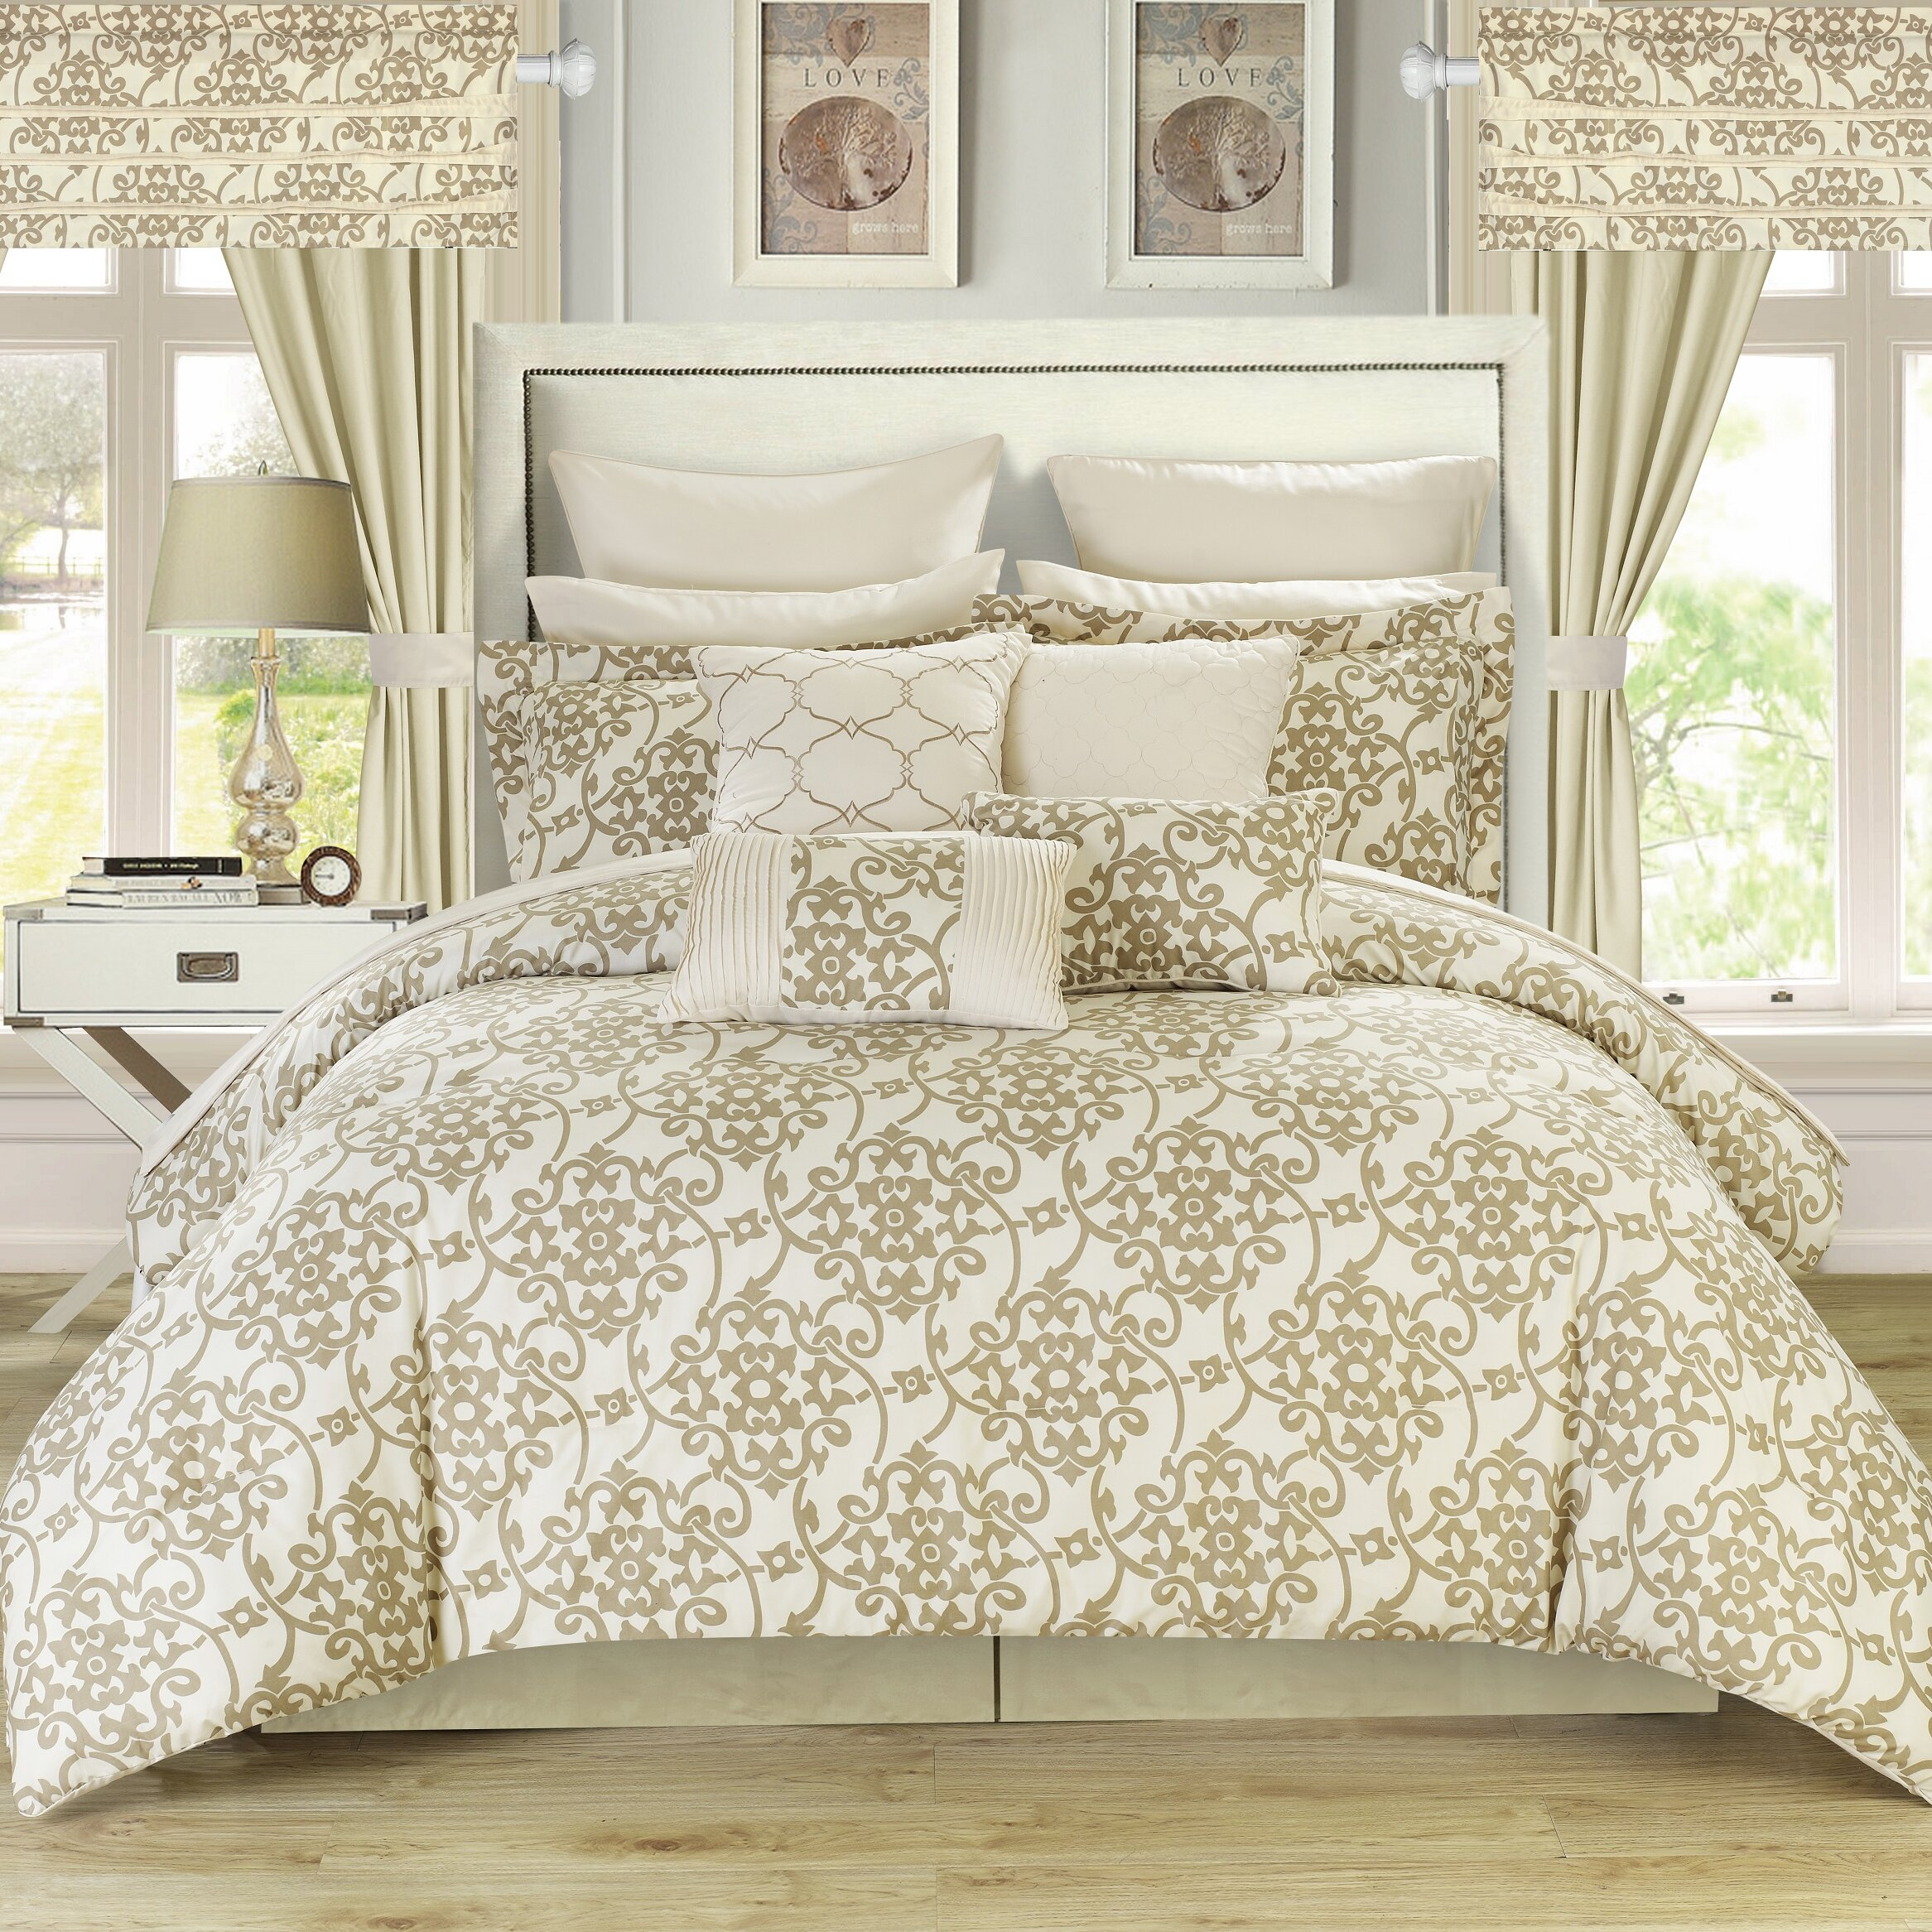 Comforter sets in queen, king and other mattress sizes can give your room a fresh look with one simple change. At Sears, you can find a broad range of comforter .